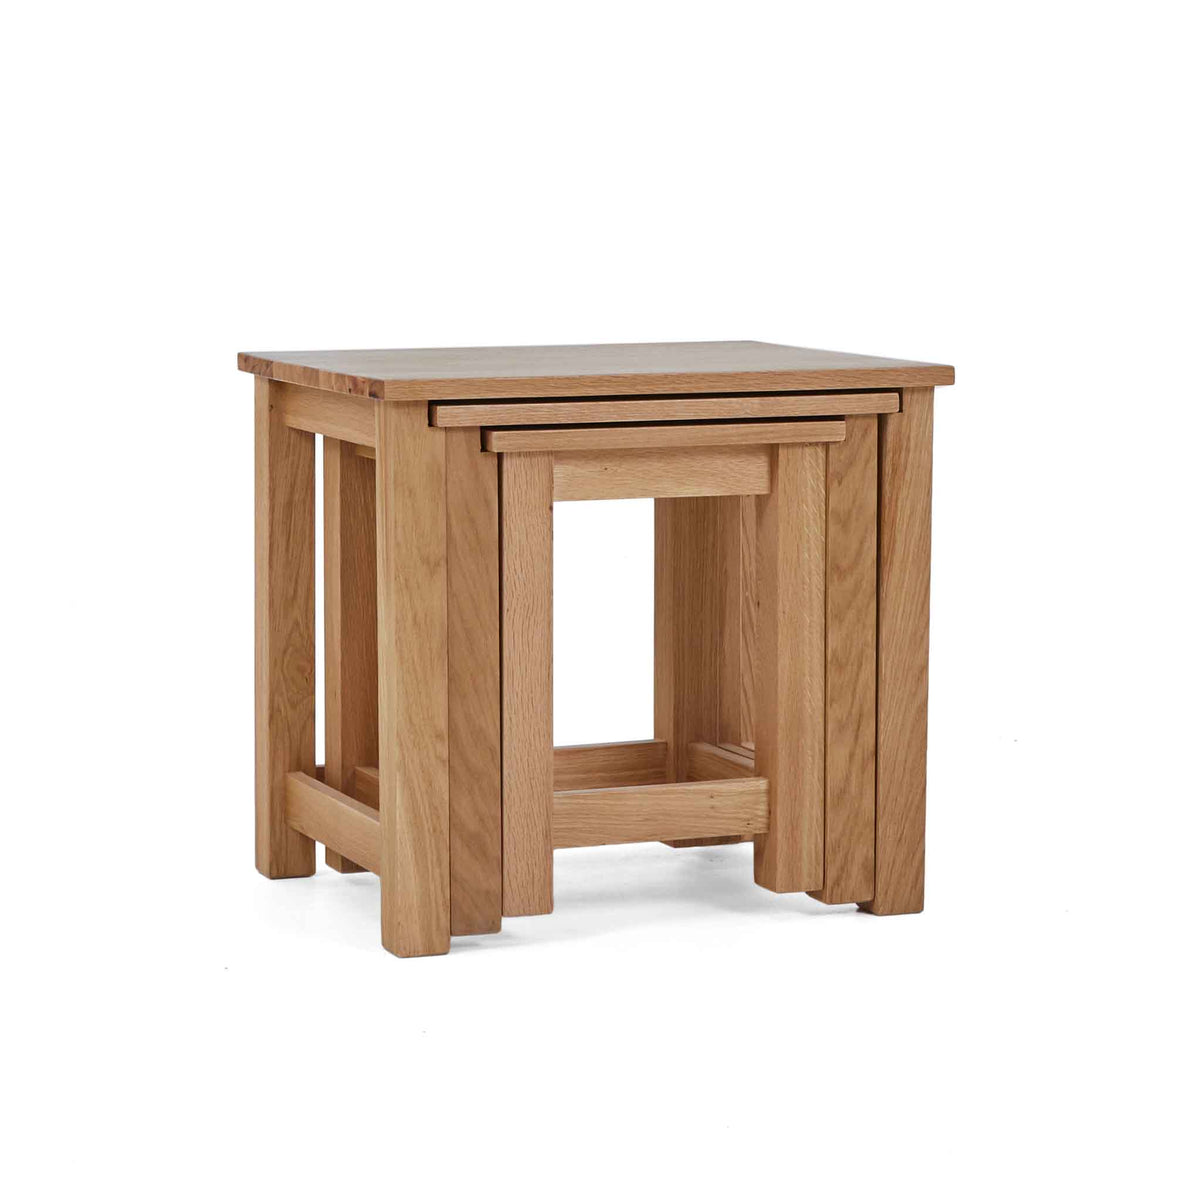 Stacked view of the Falmouth Oak Nest of 3 Tables by Roseland Furniture